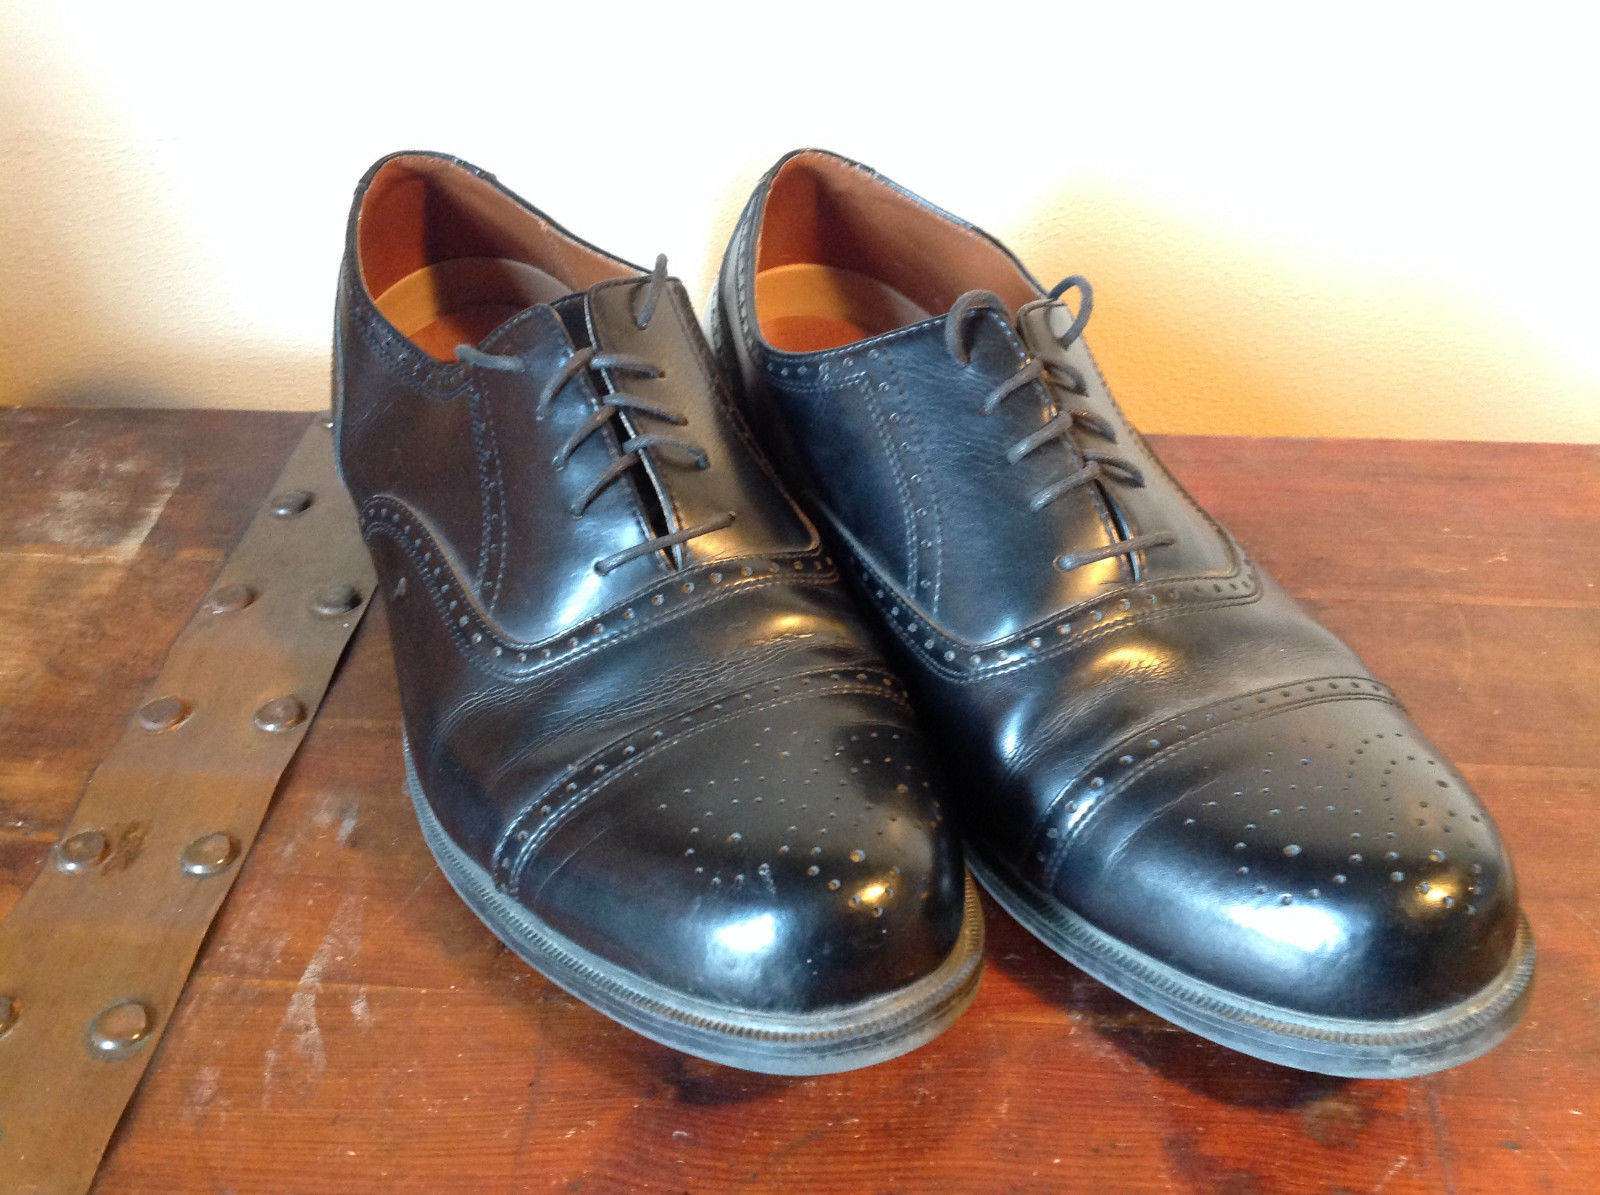 Black Deer Stags Comfort Leather Tie Laces Size 15W